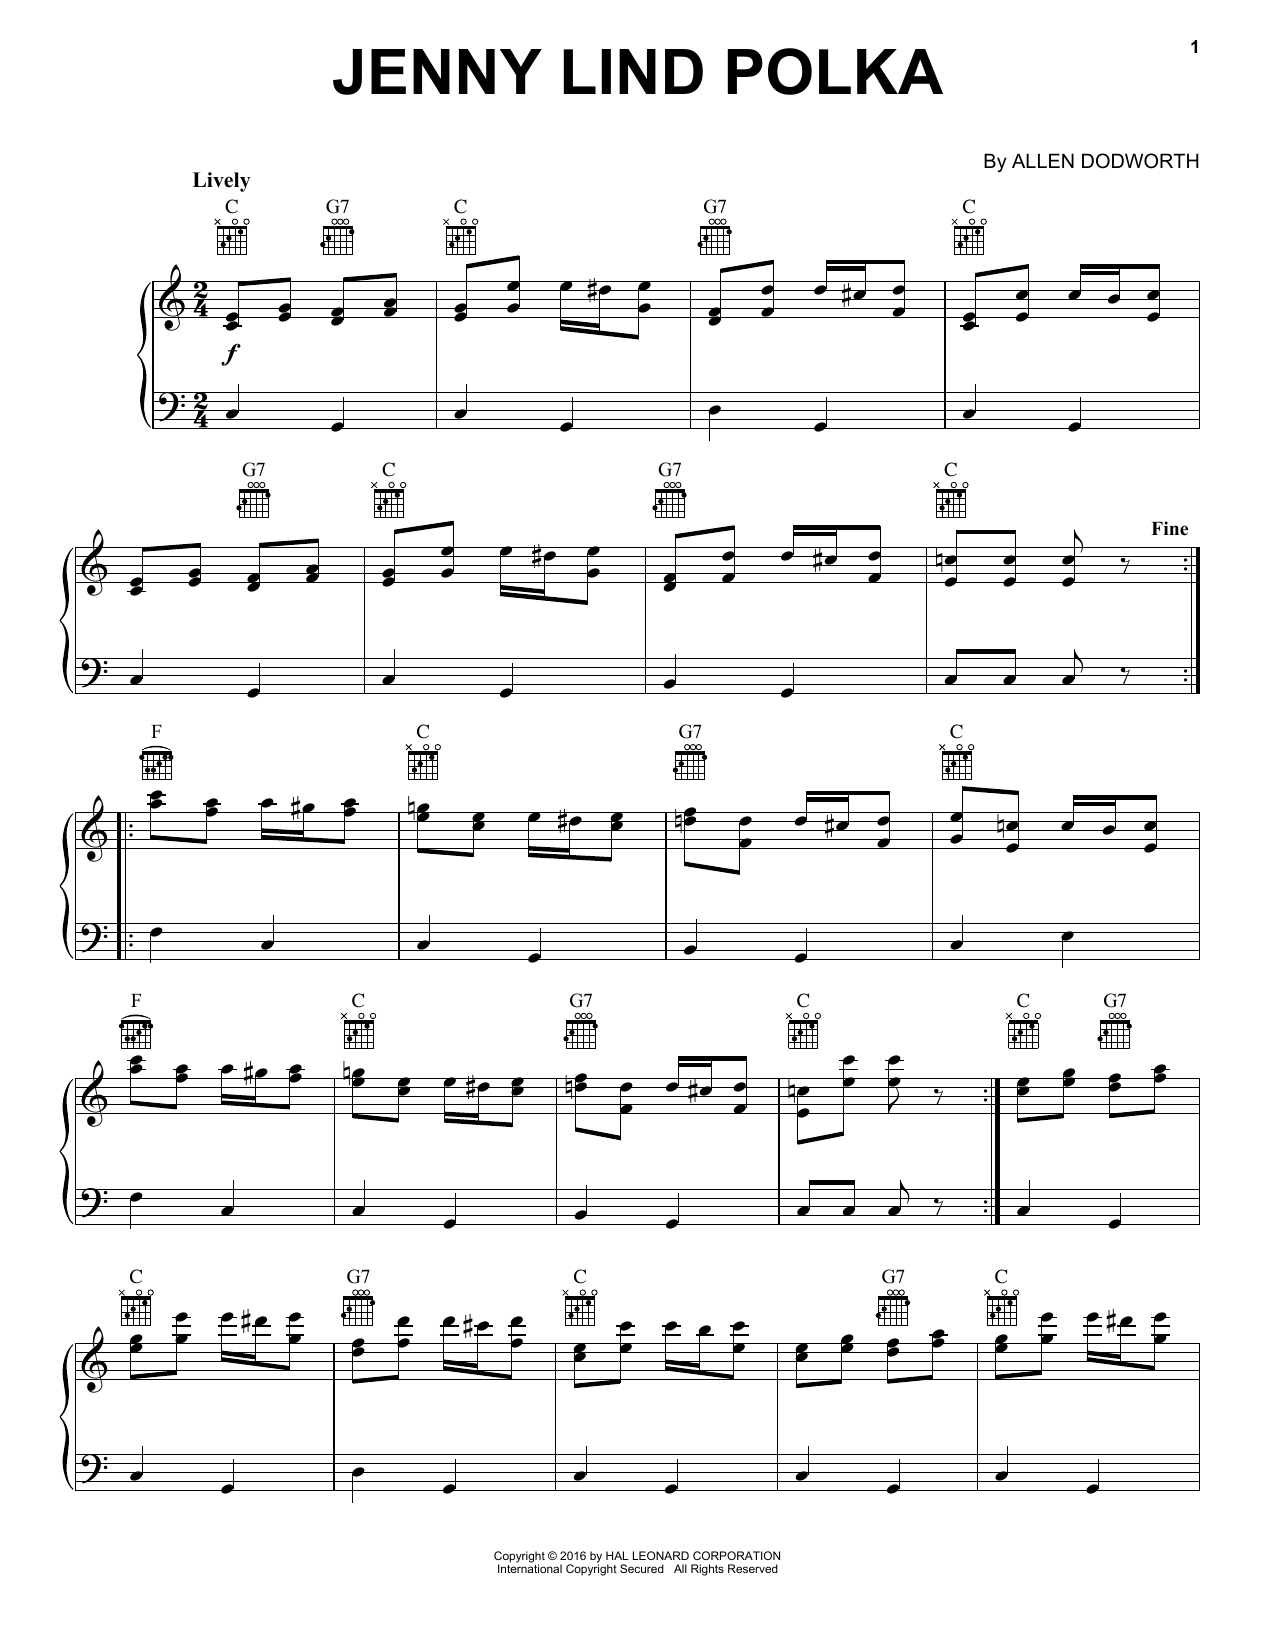 Download Allan Dodworth 'Jenny Lind Polka' Digital Sheet Music Notes & Chords and start playing in minutes